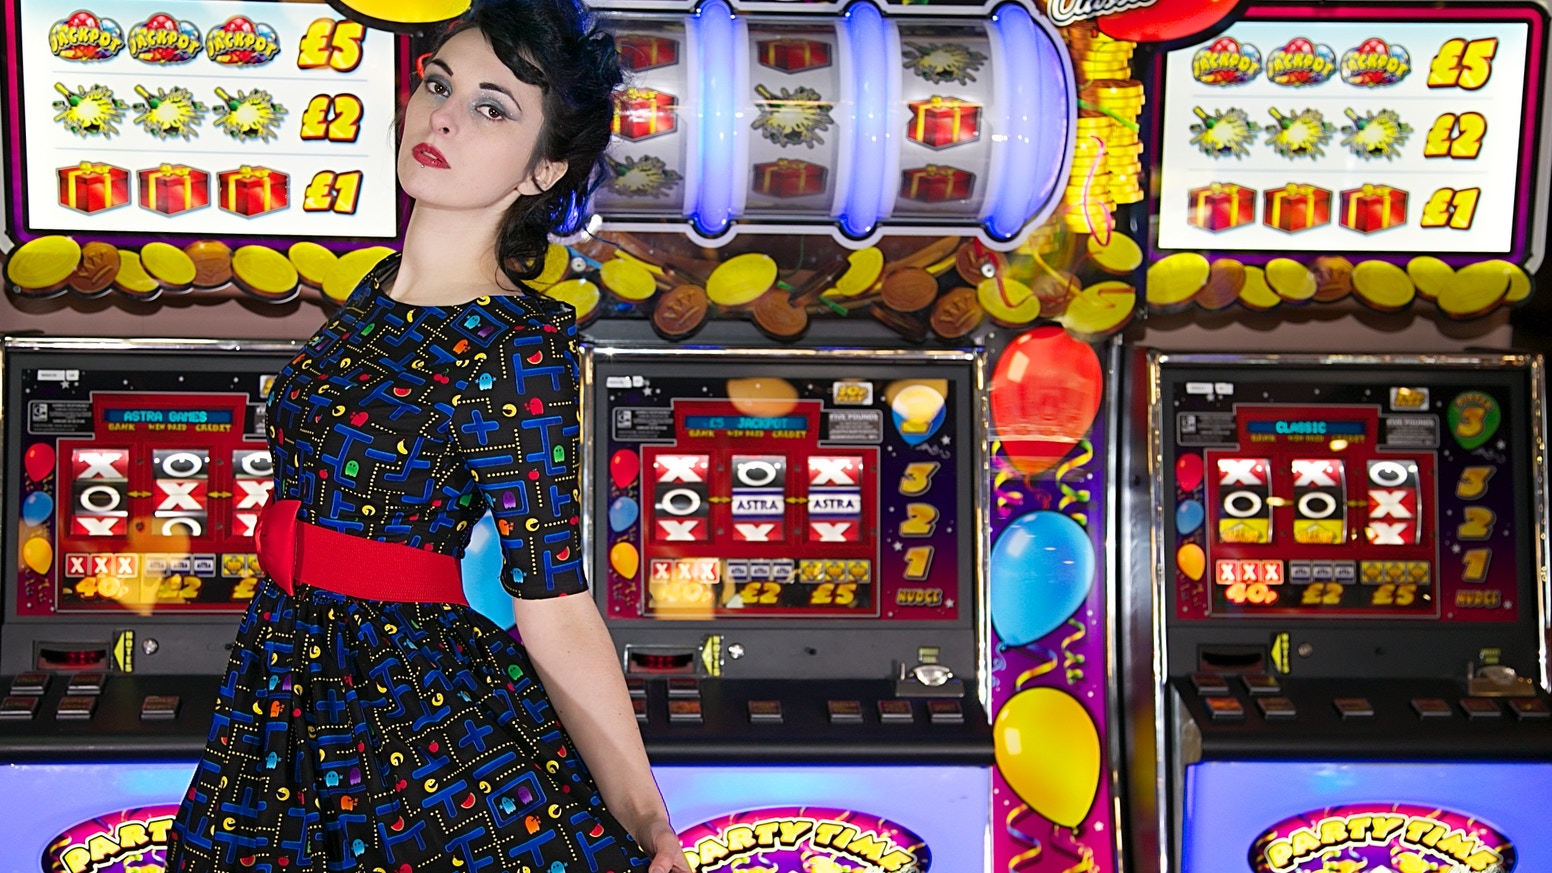 Retro Gamer Dress - Last Chance by Alison Ballard — Kickstarter